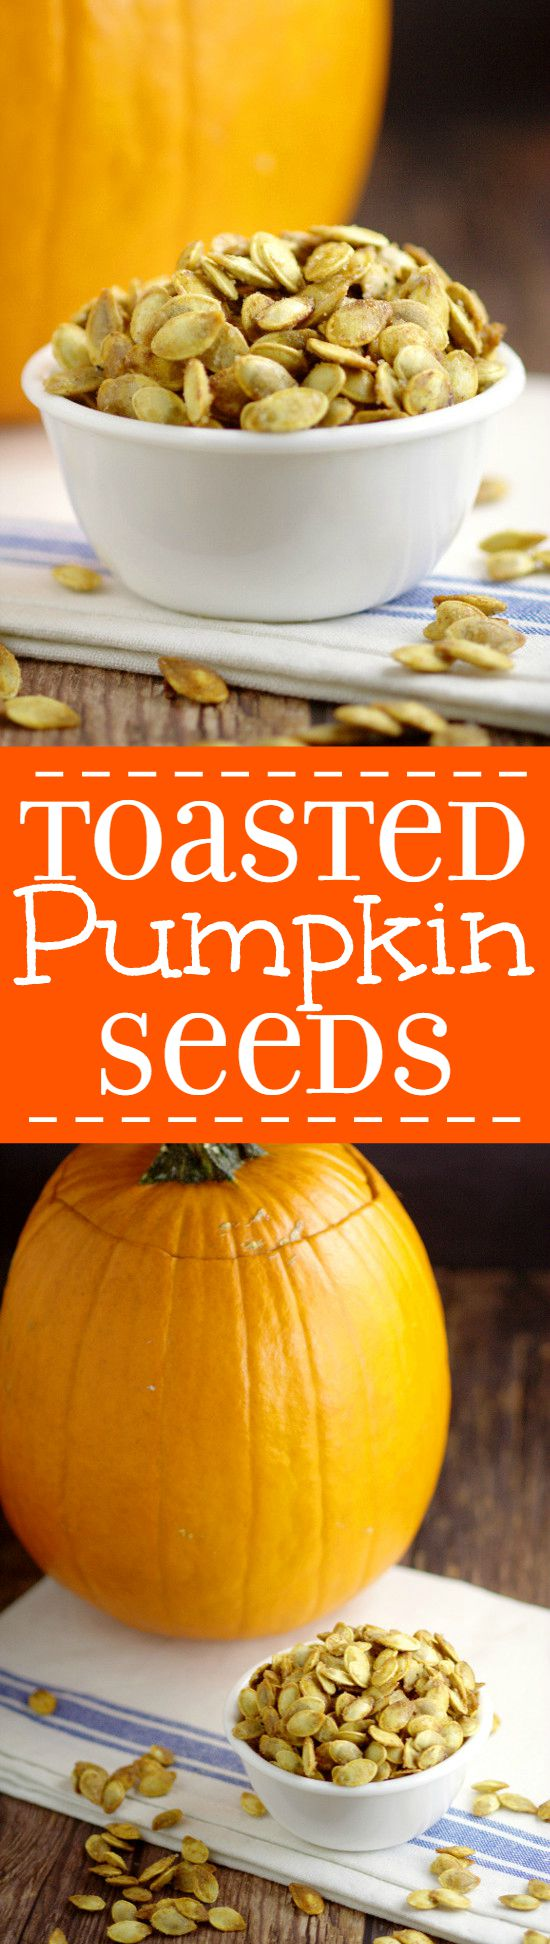 Don't throw out your pumpkin seeds! Toasted Pumpkin Seeds are a delicious and easy snack. You can make this buttery, salty goodness right in your oven! Perfect savory treat for Halloween!